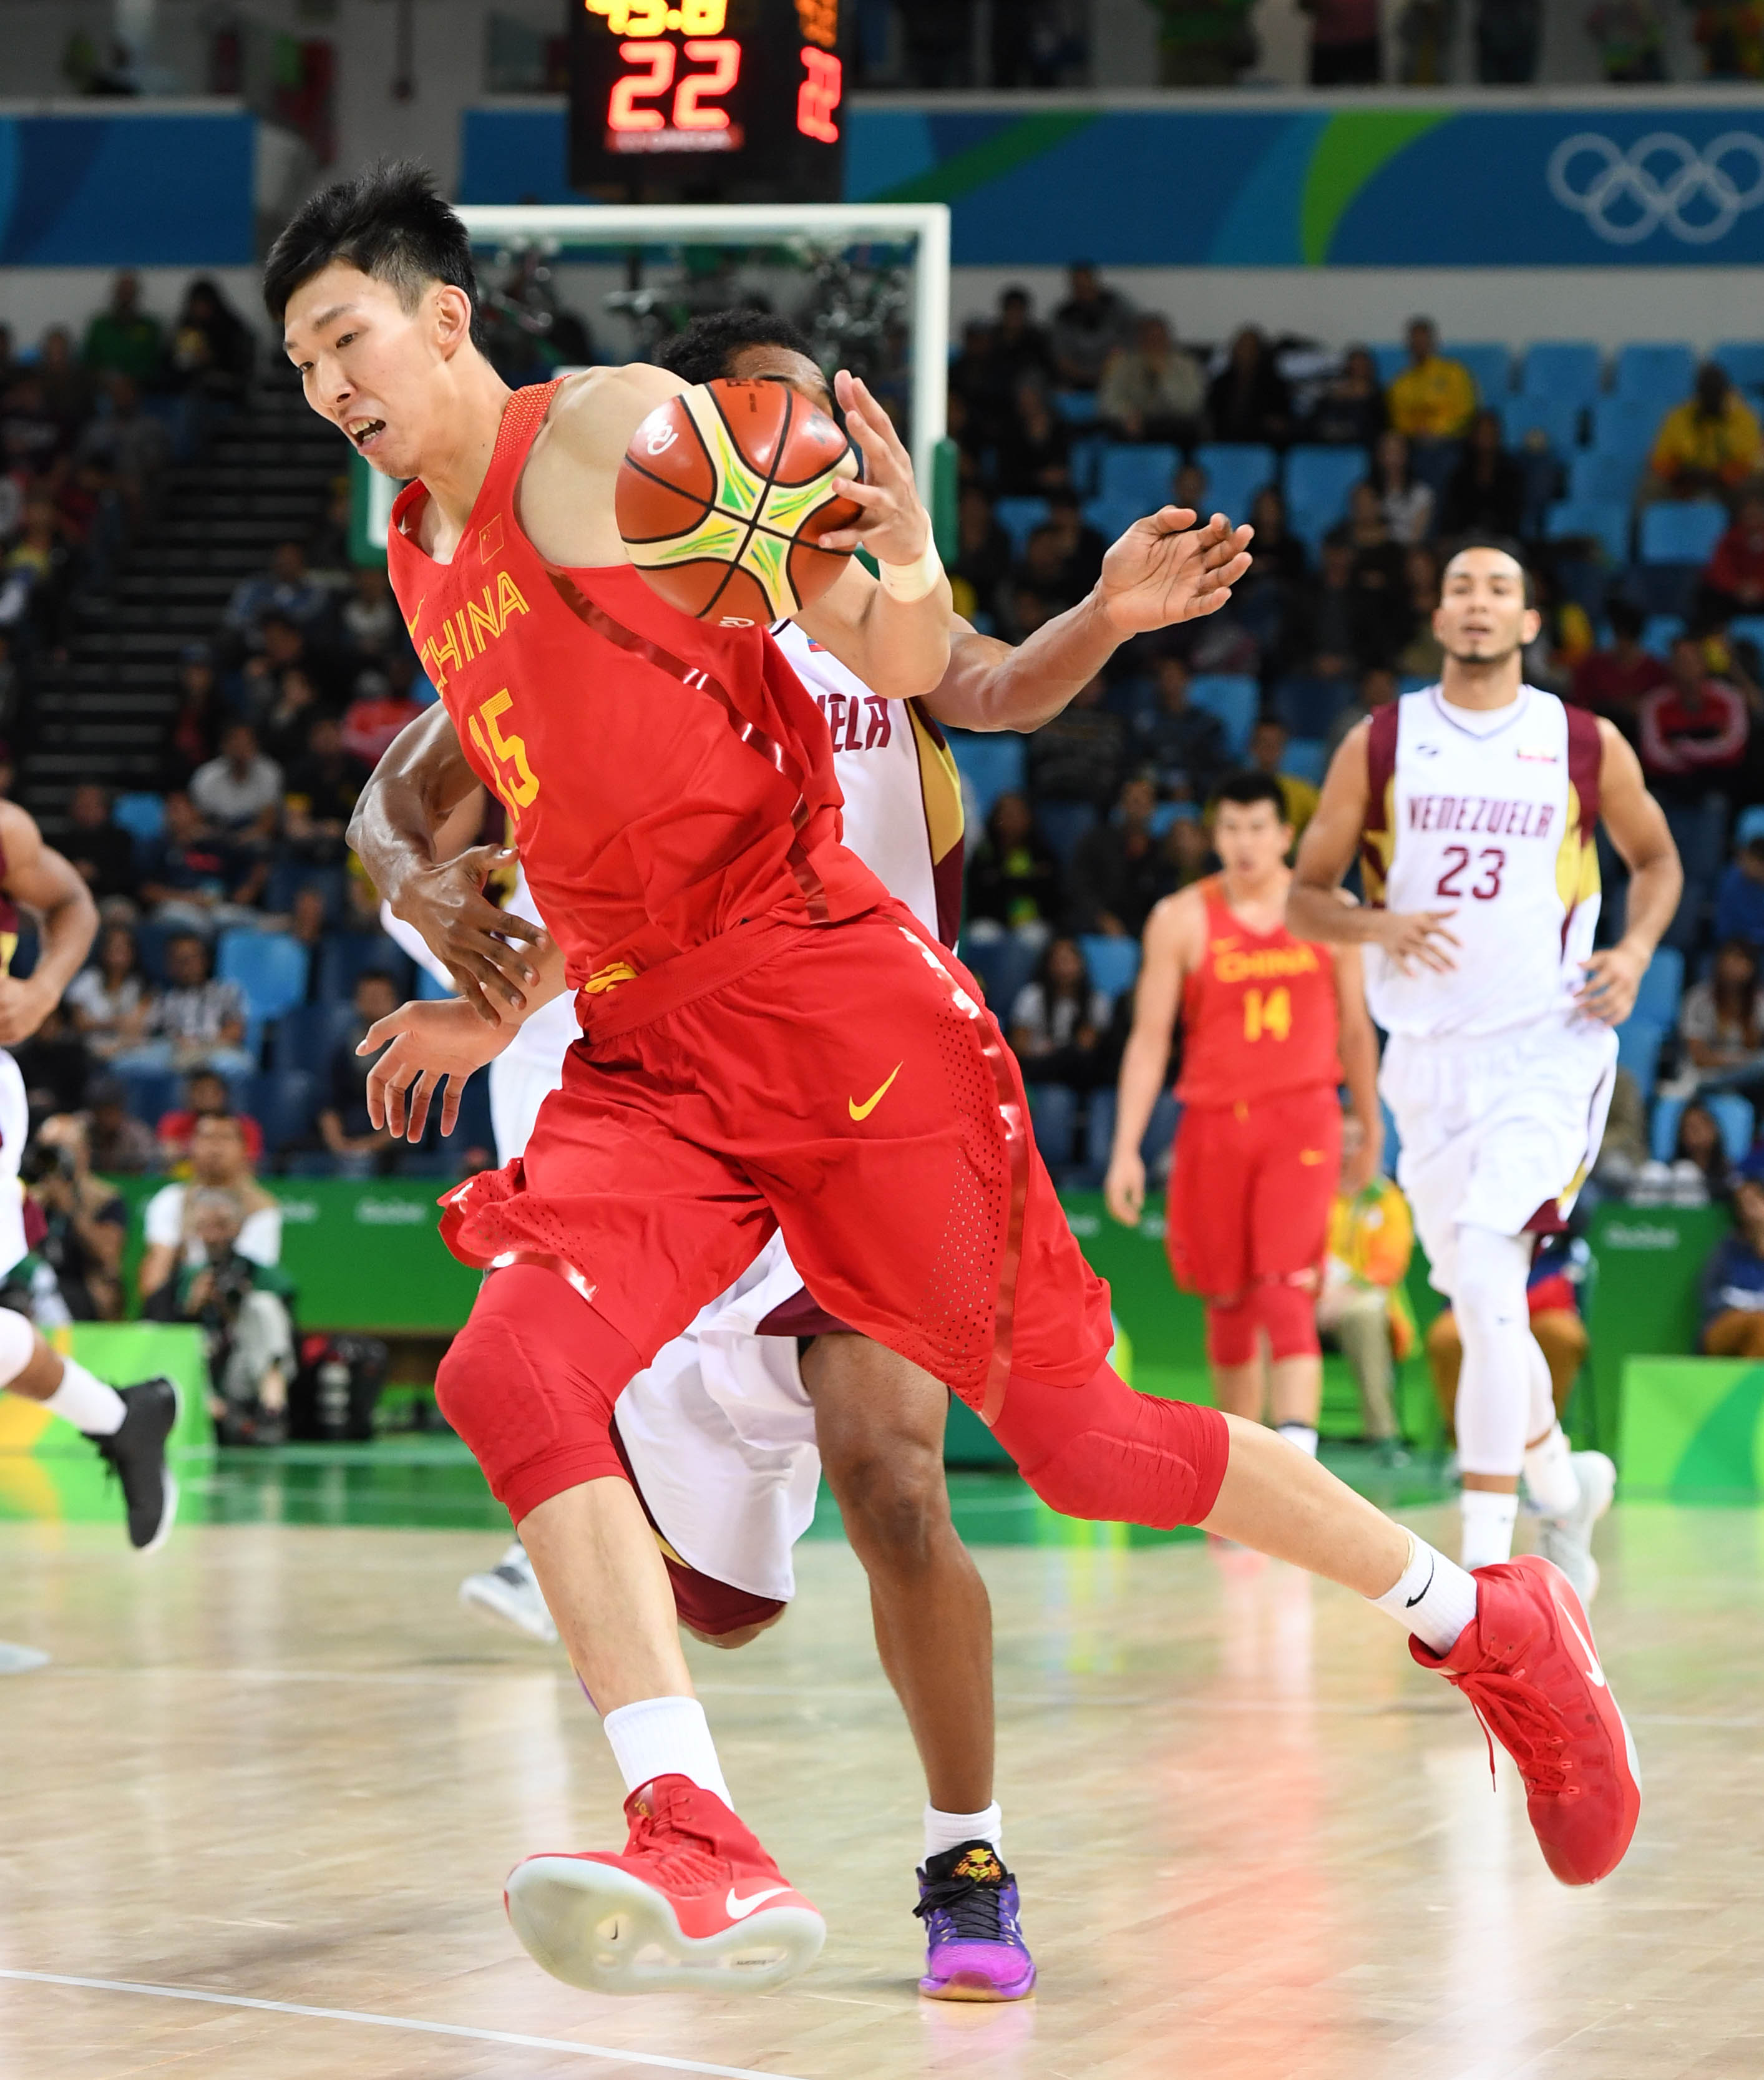 Rockets Zhou Qi Injury: How Could The Addition Of Zhou Qi Help The Houston Rockets?